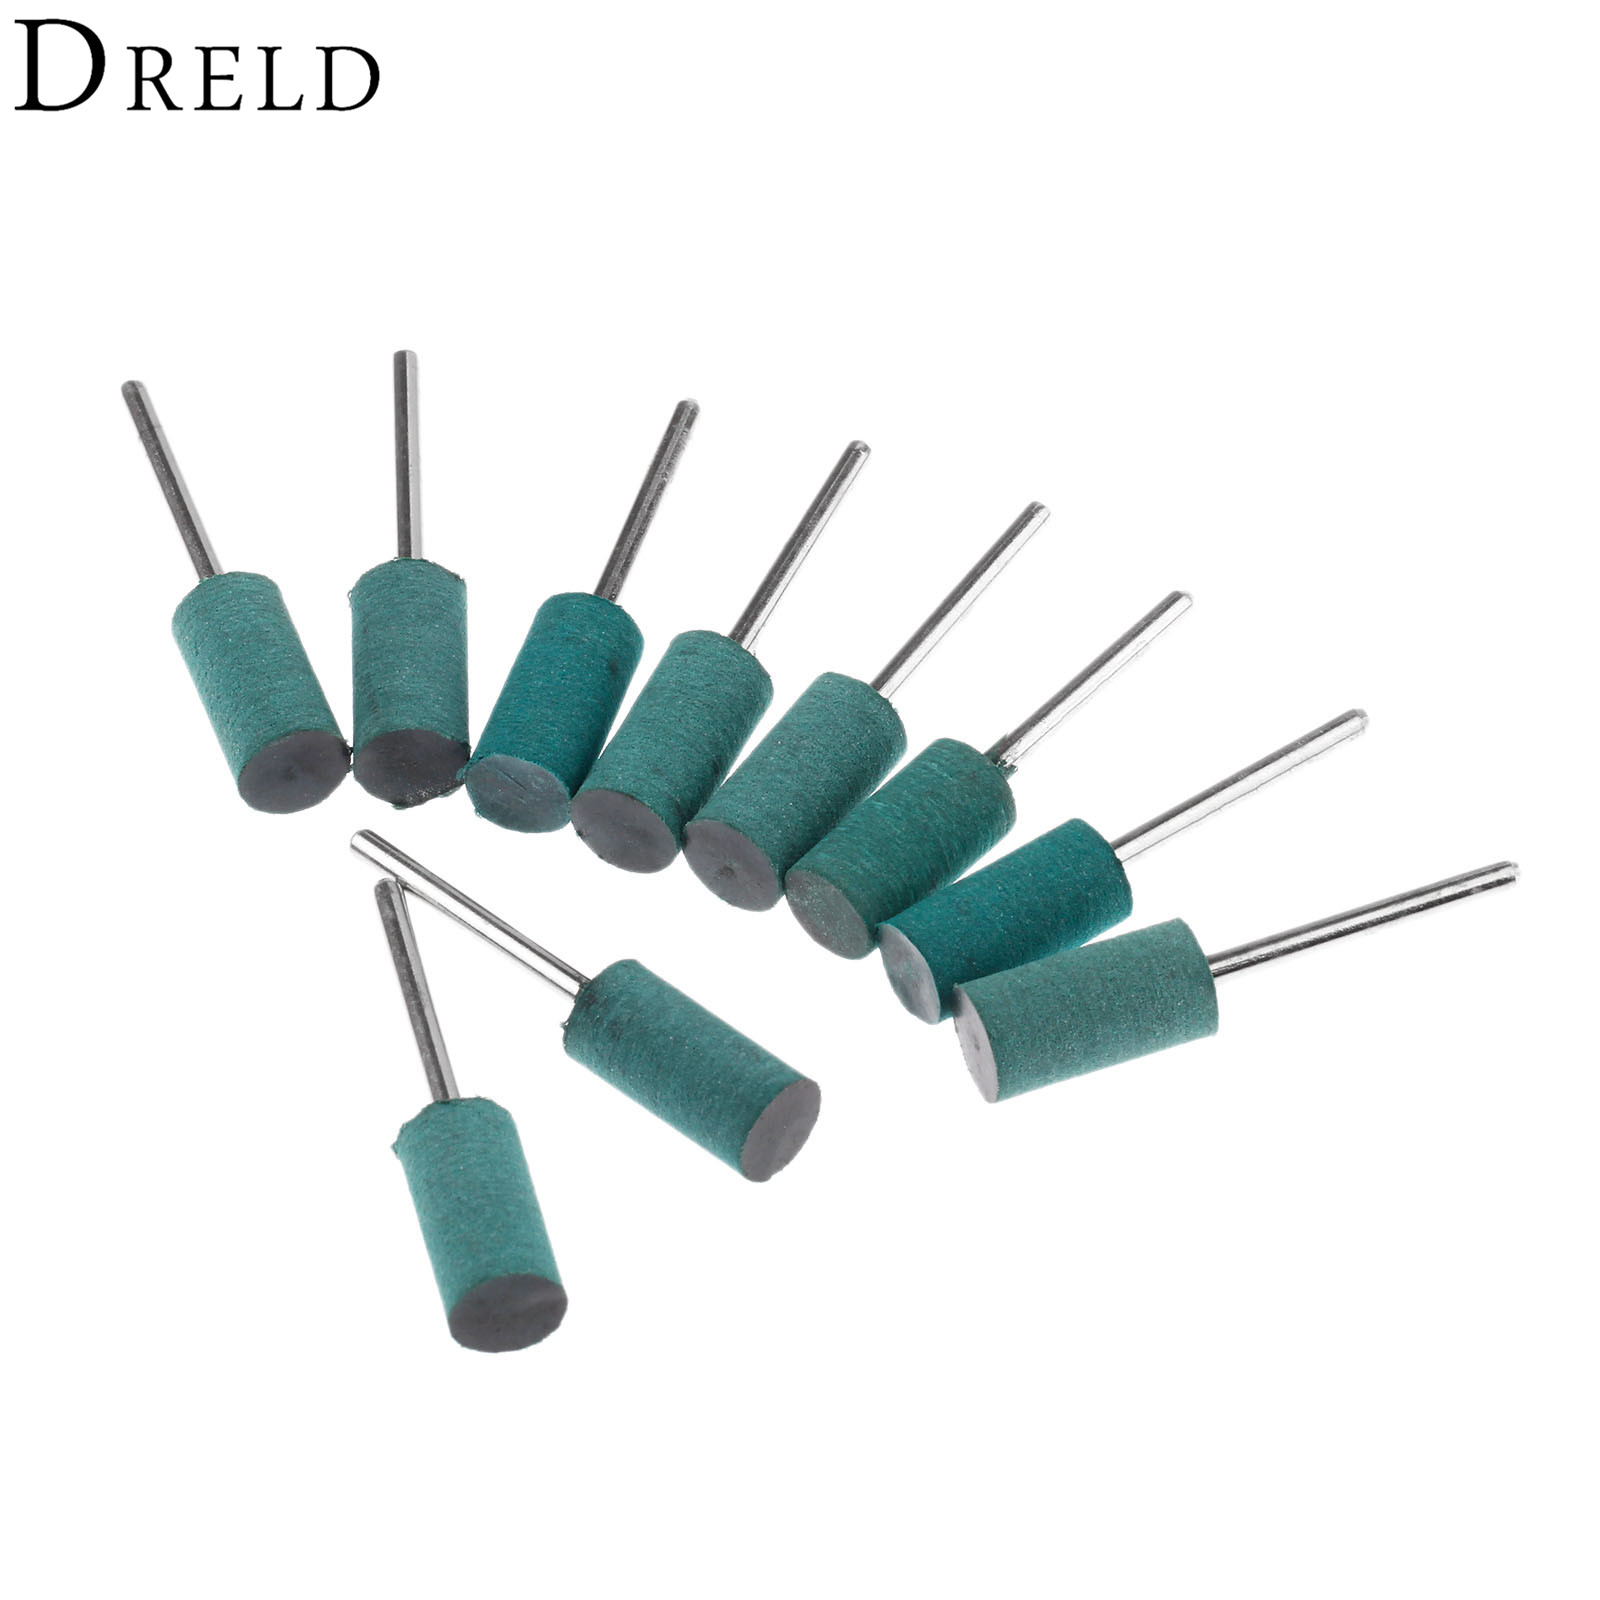 DRELD 10Pcs Dremel Accessories 10mm Cylindrical Rubber Polishing Grinding Head Mounted Points For Rotary Tools 3mm 1/8